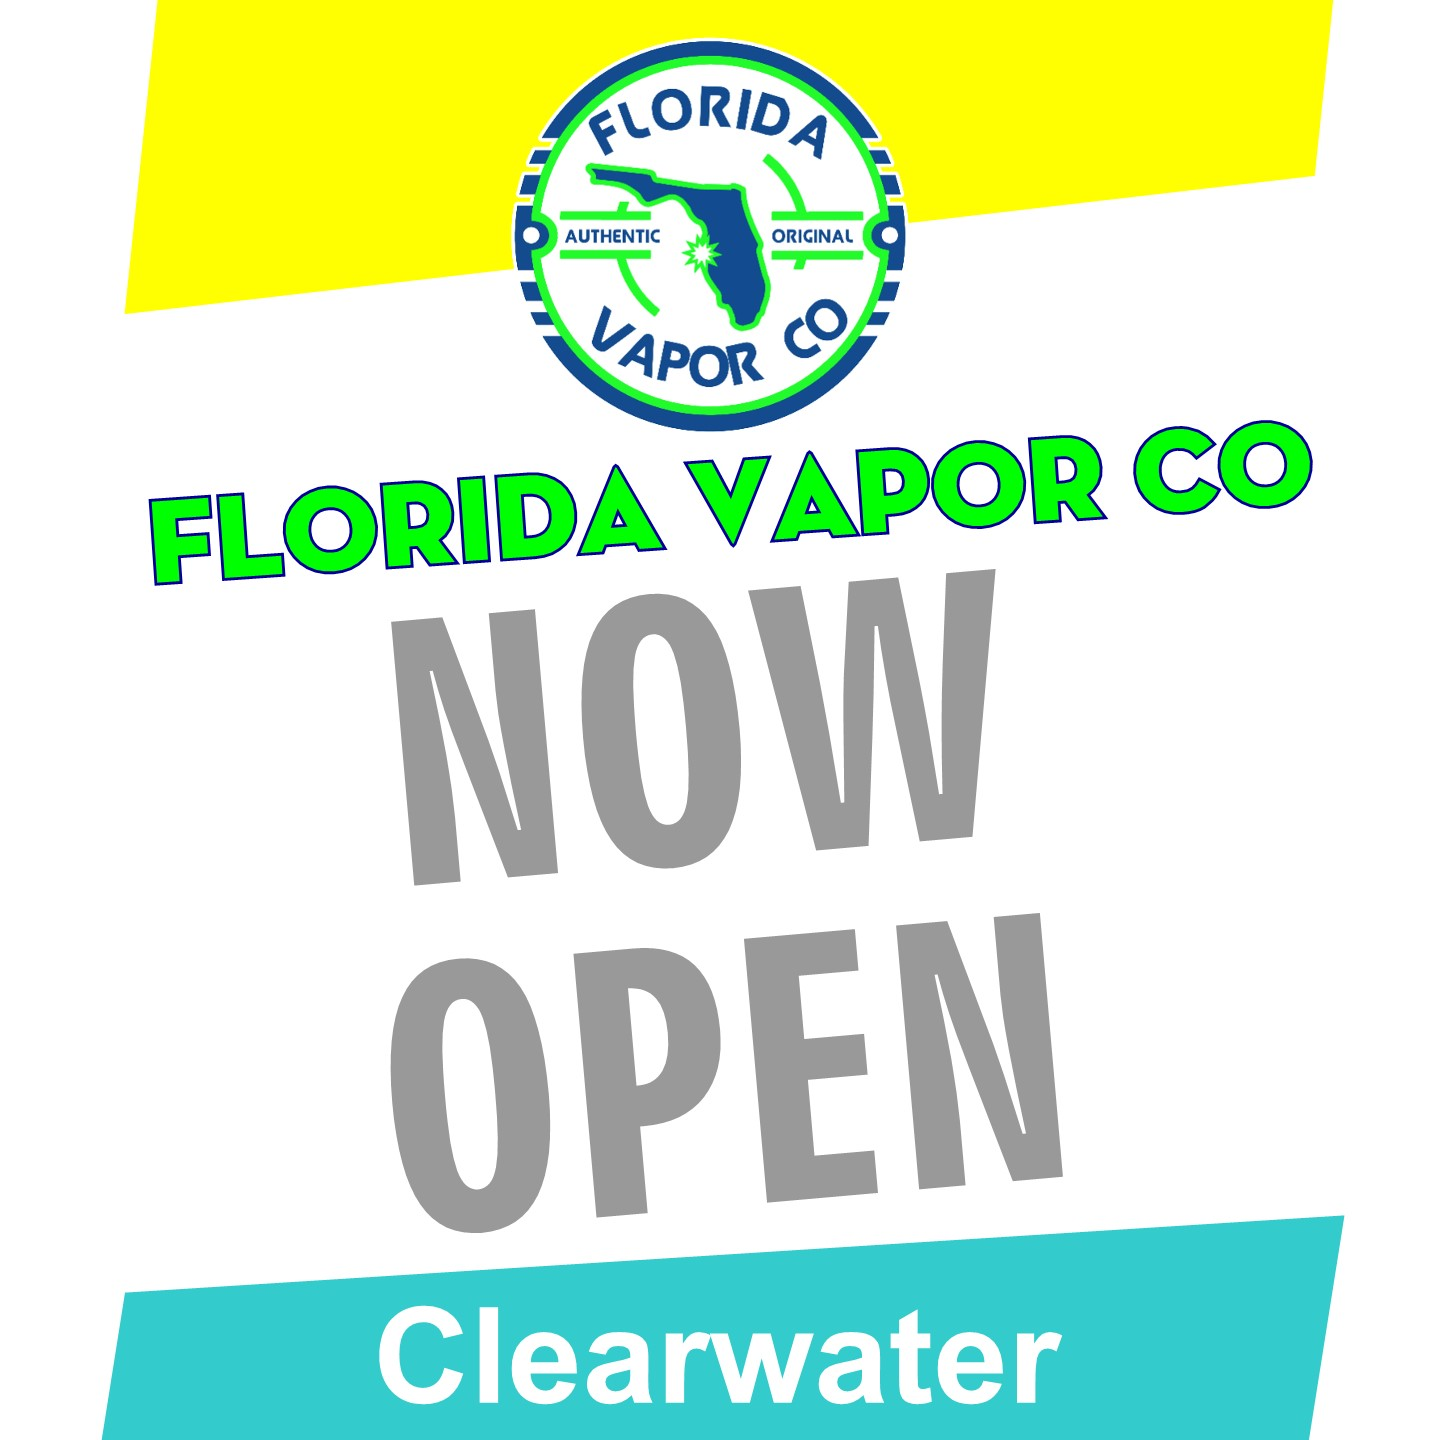 fla_vapor_co_clearwater.jpg